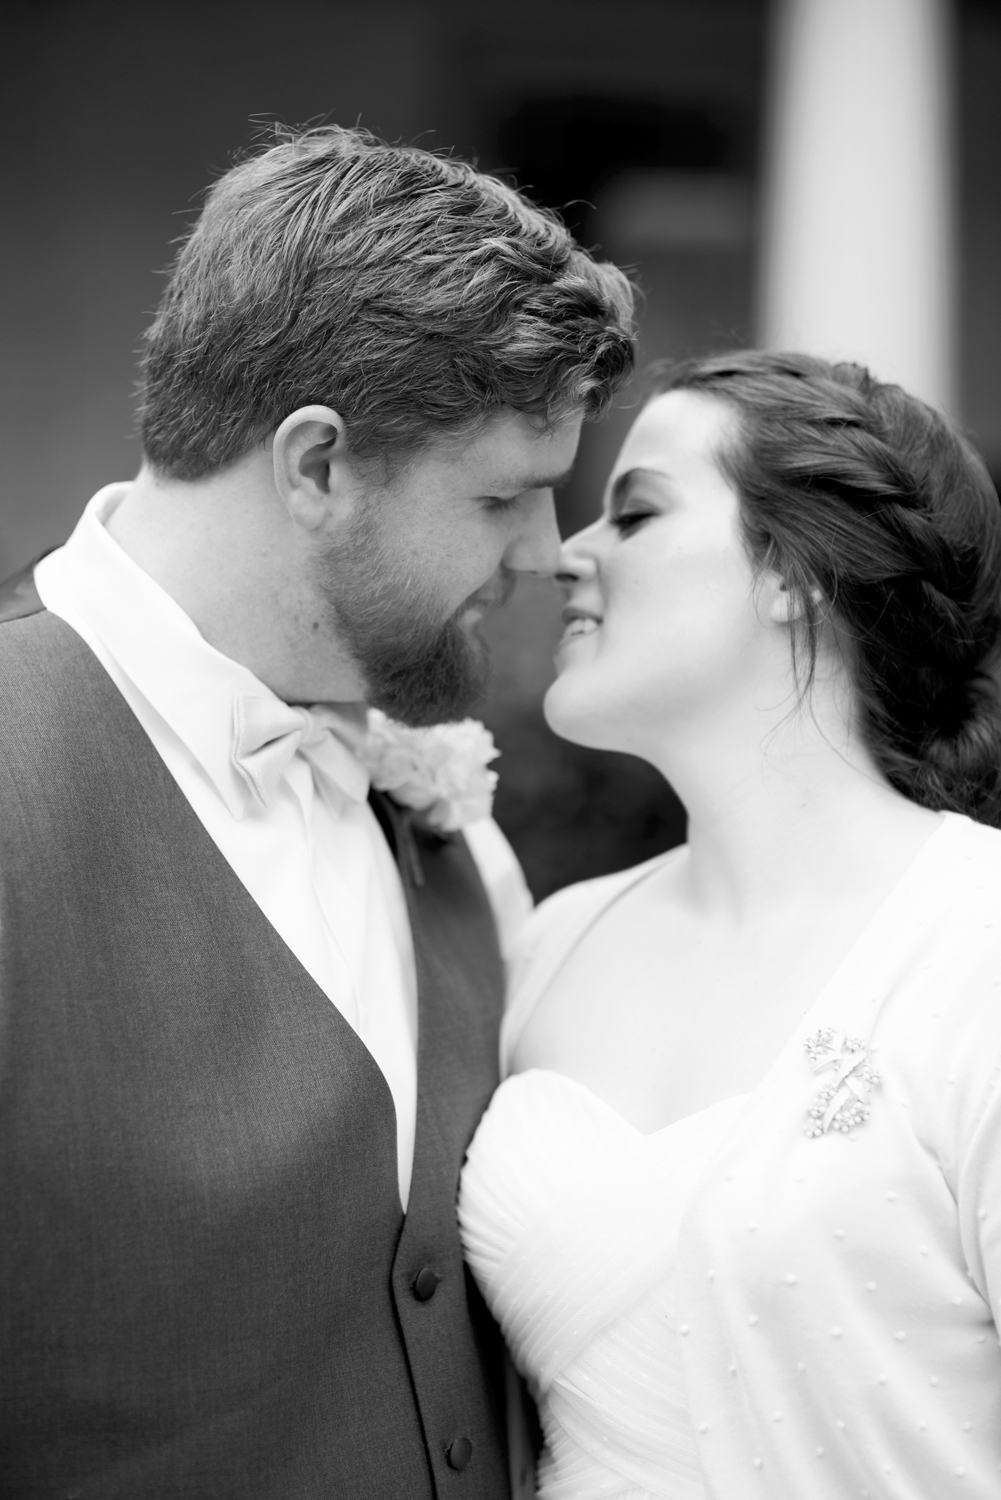 Intimate black and white bride and groom portrait